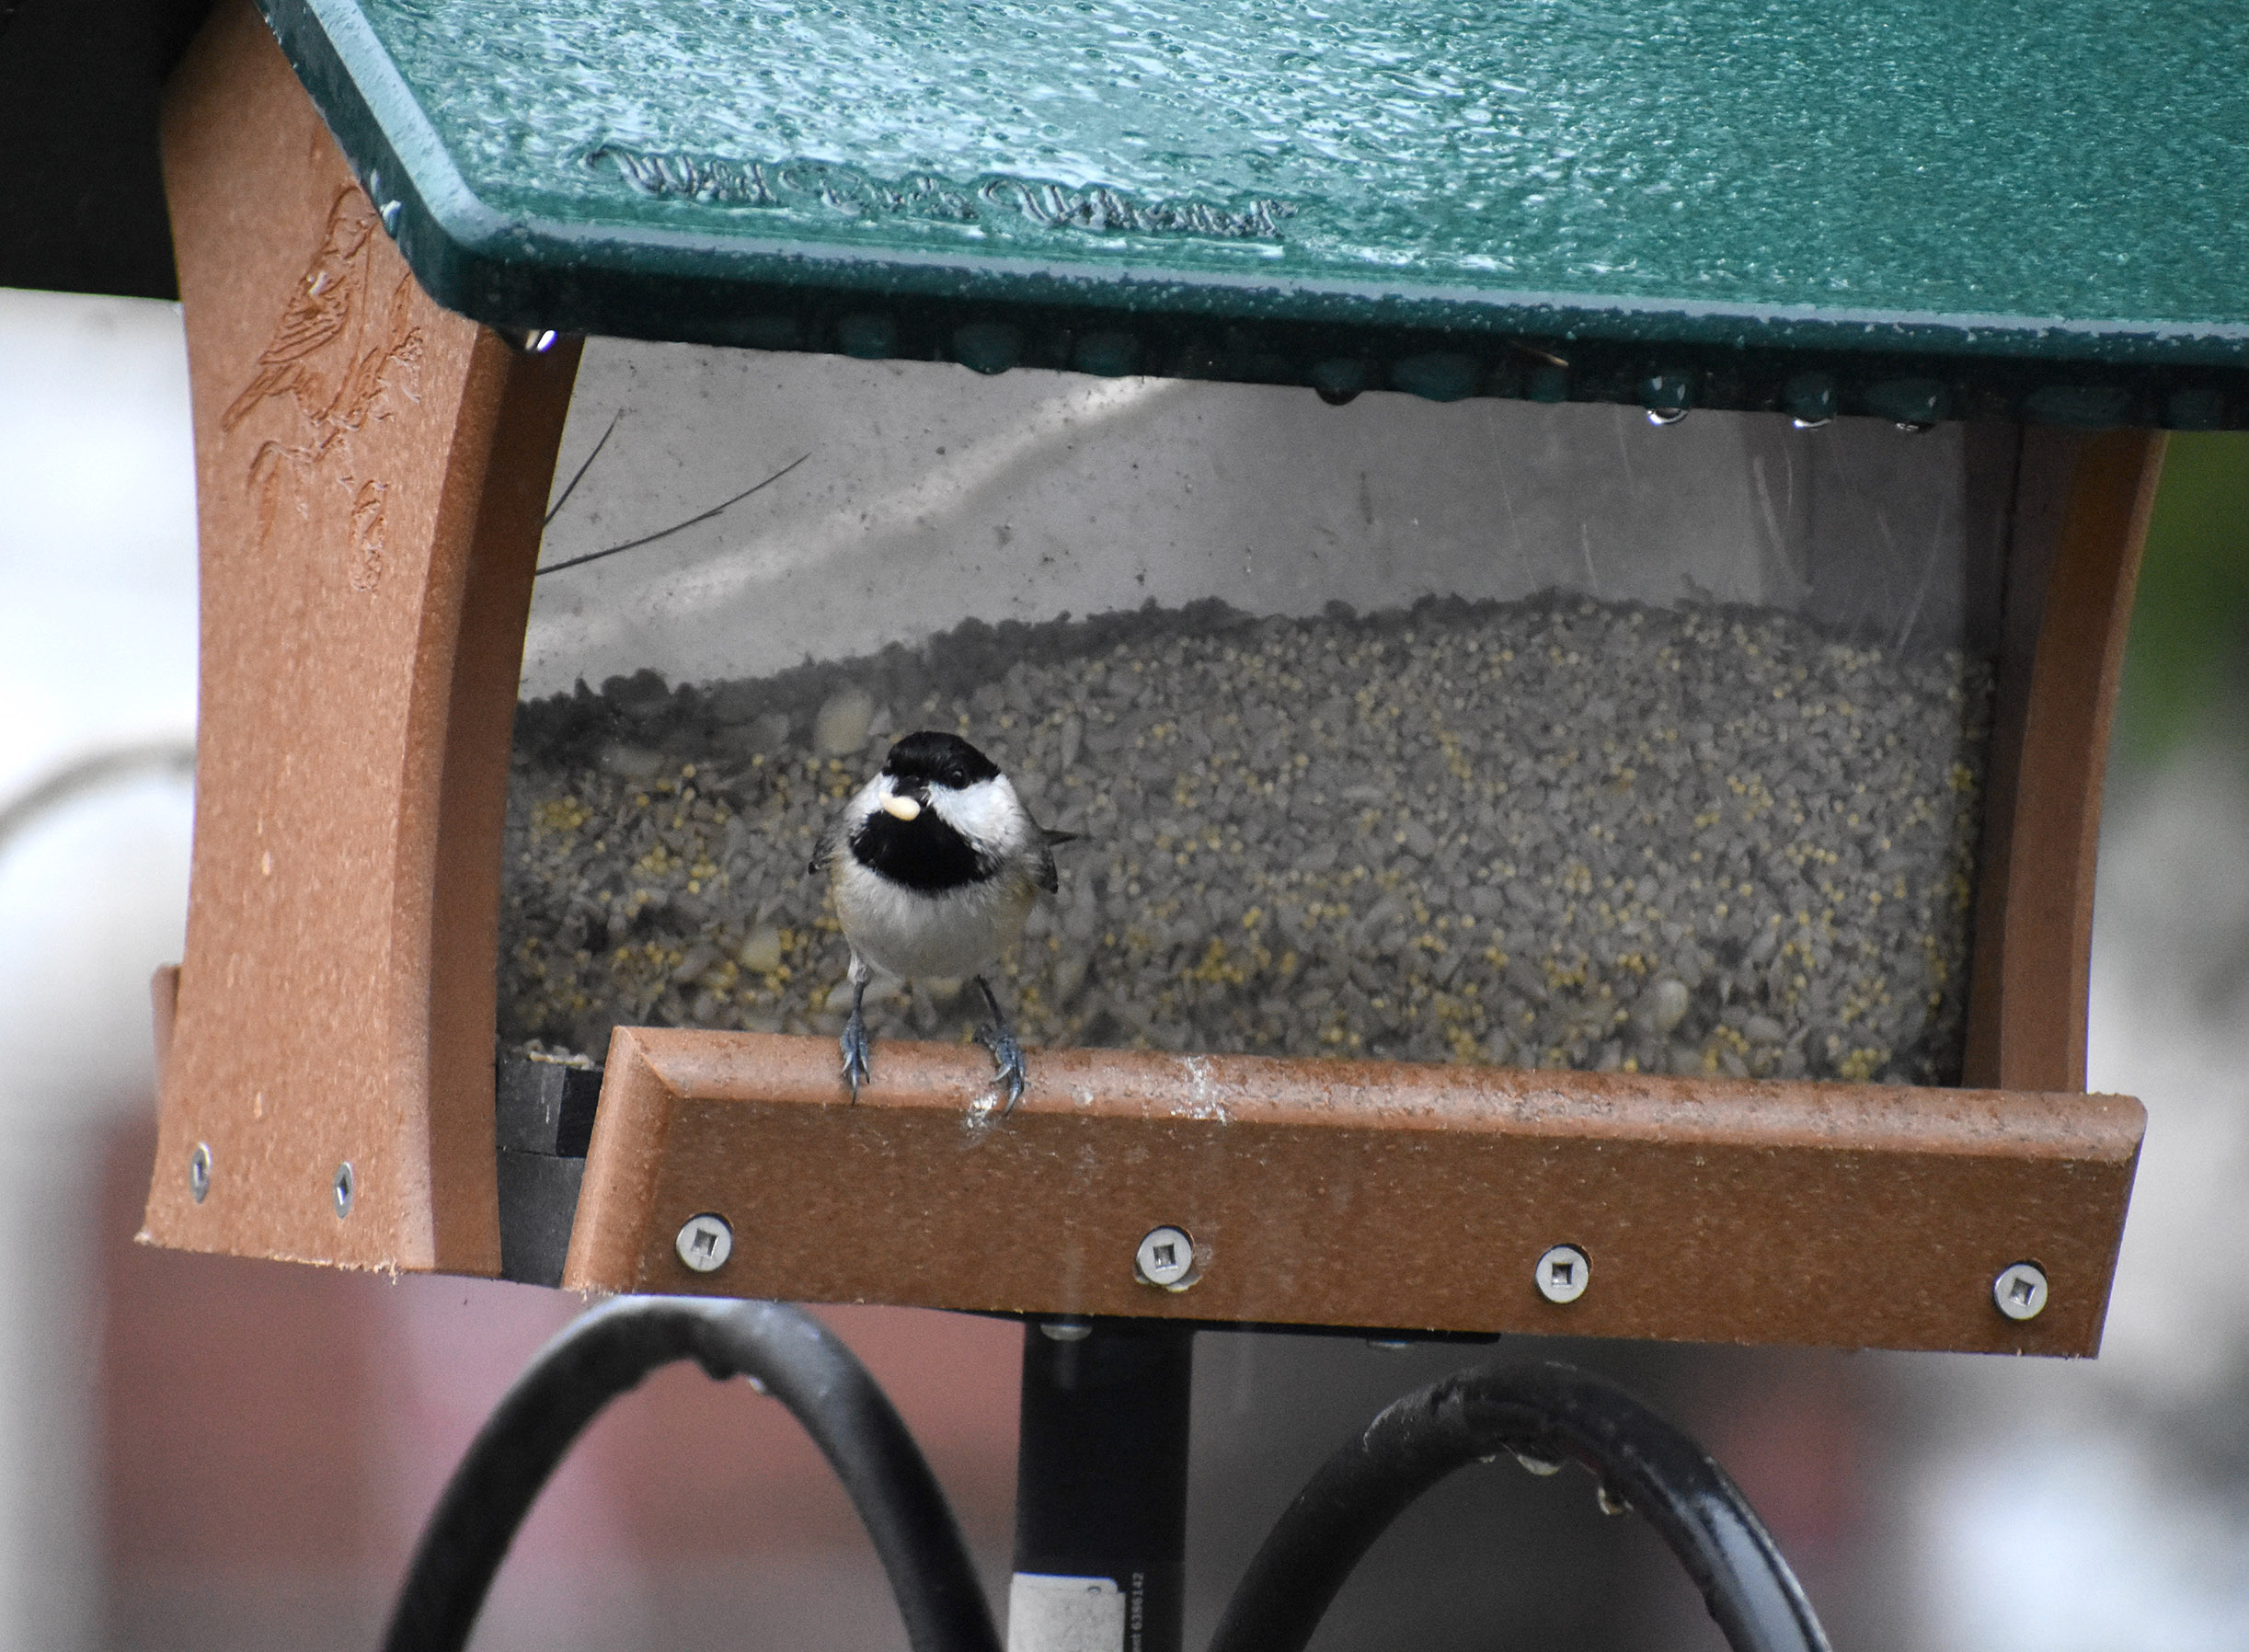 My favorite yard bird, the Carolina chickadee, about to depart with its quarry. Photo by Kelly Ball